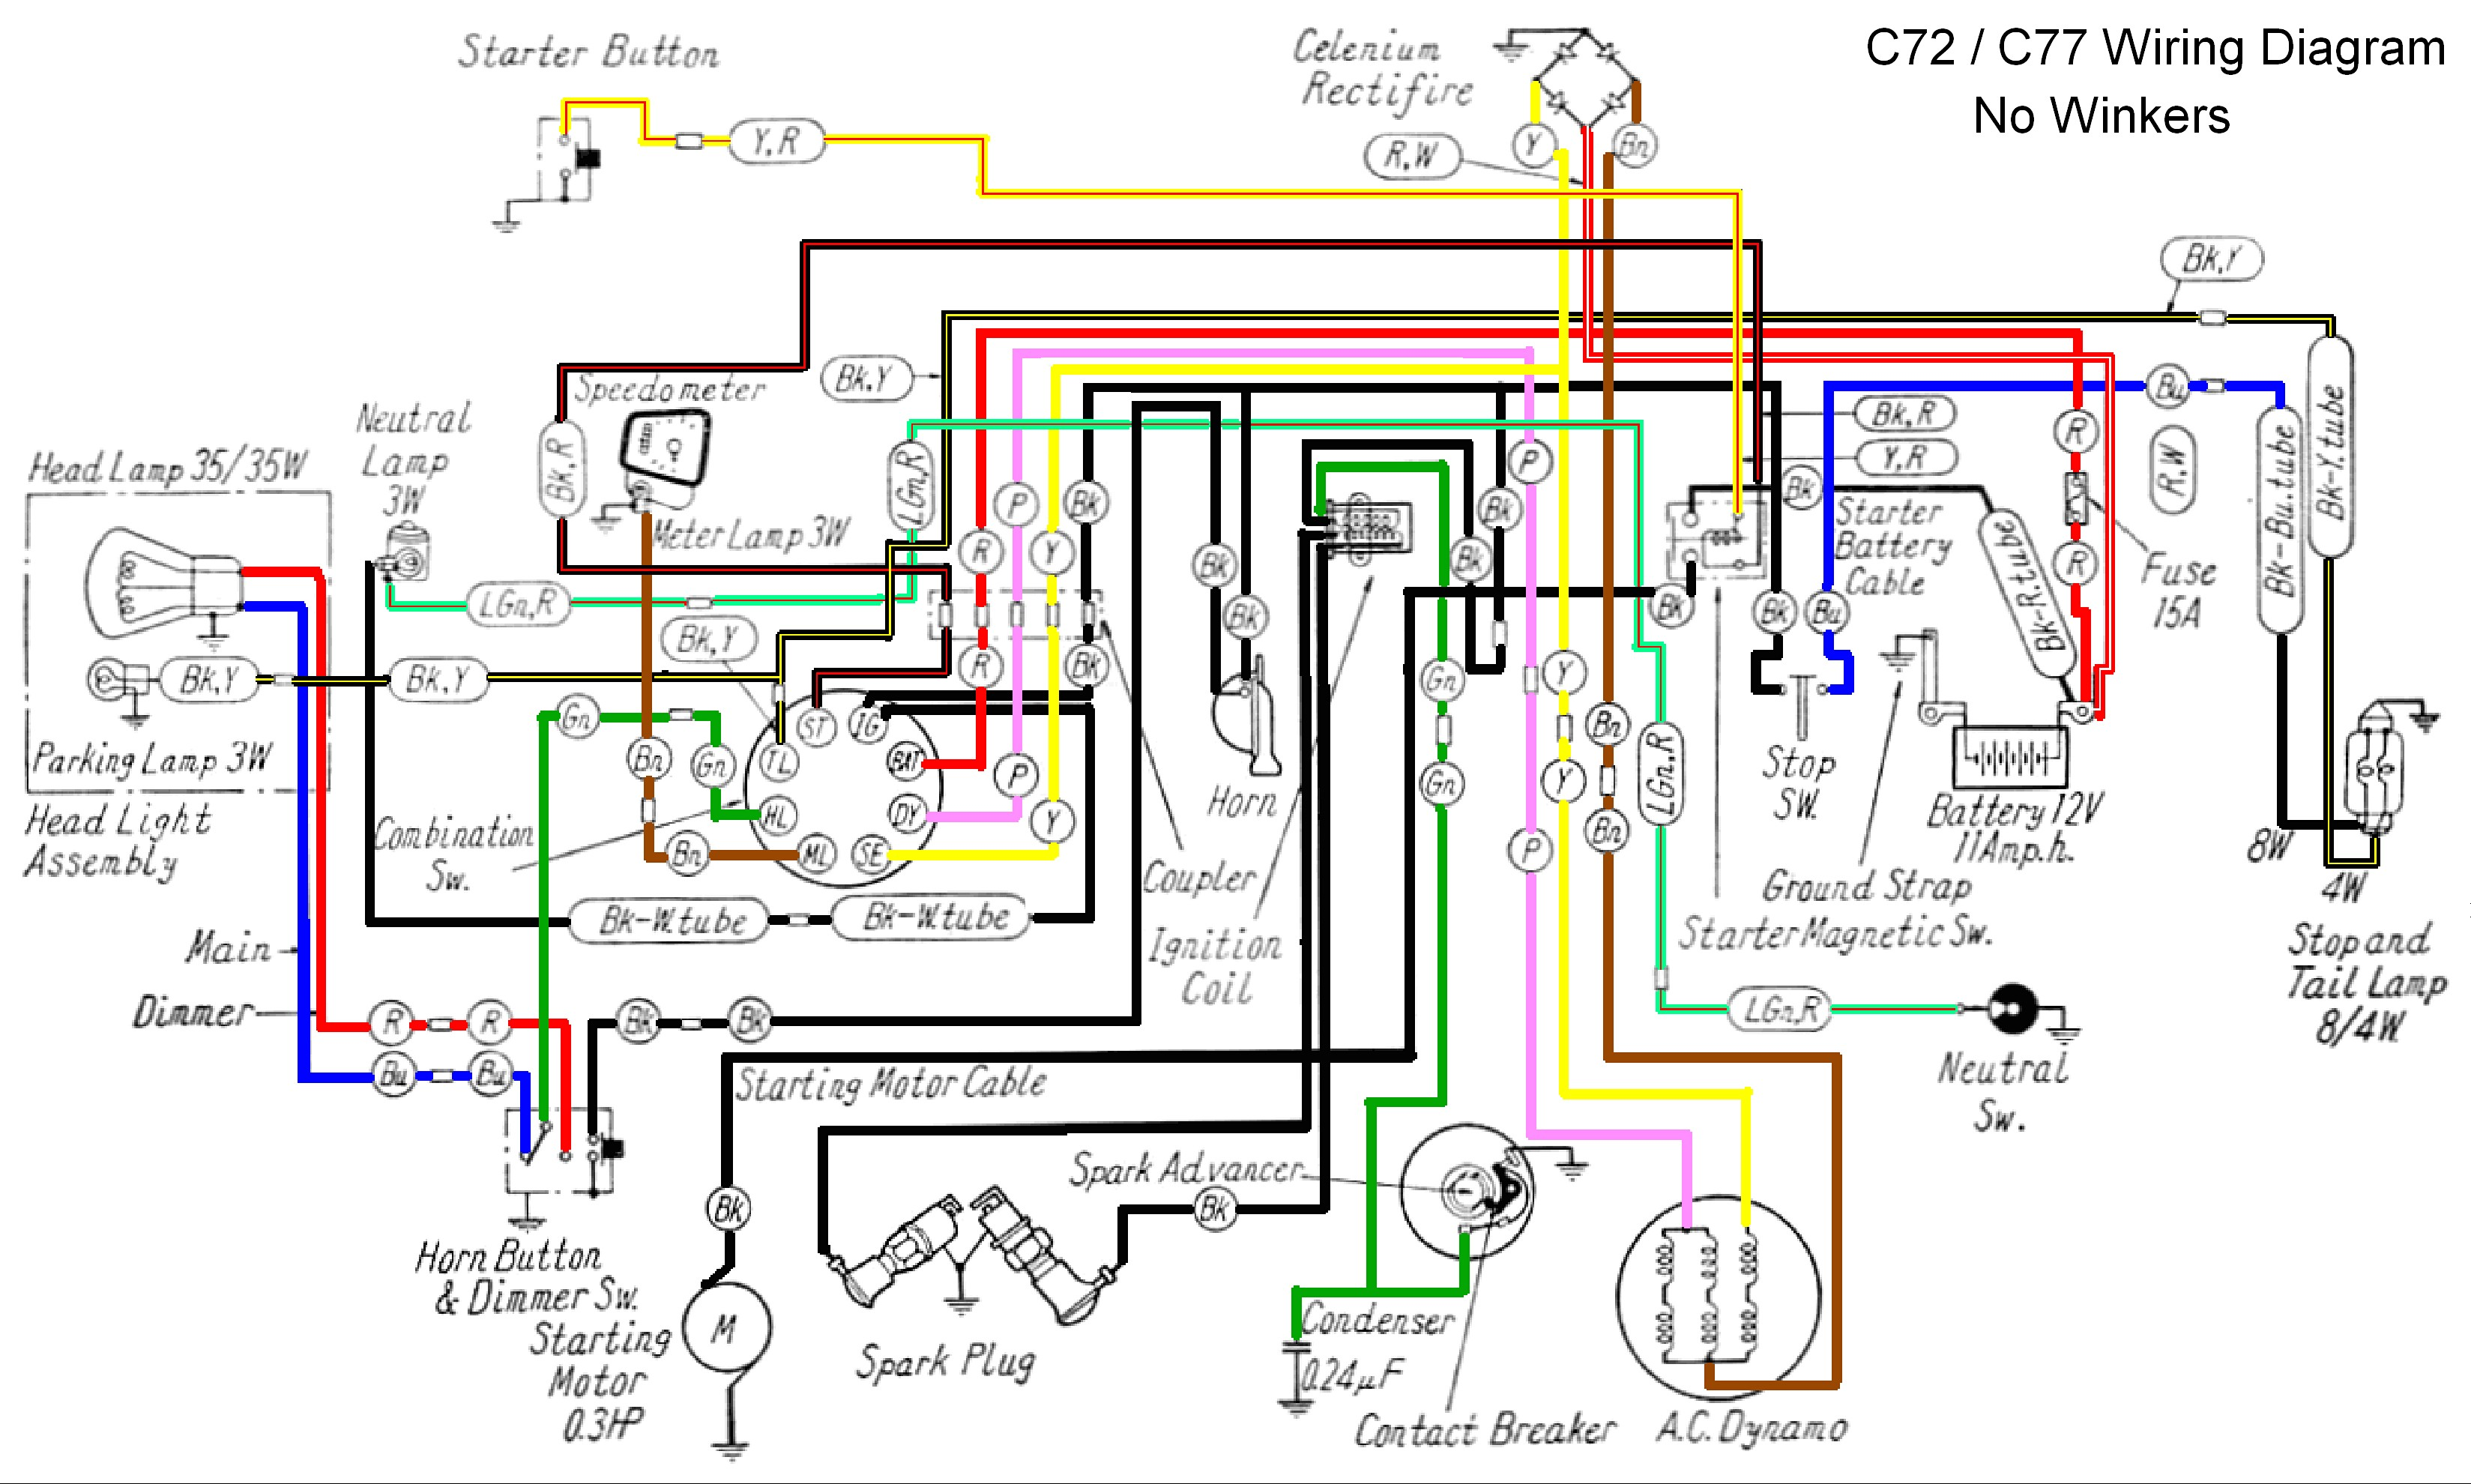 2015 harley softail wiring diagram simple wiring diagrams simple wiring  diagram for harley's 2016 harley softail